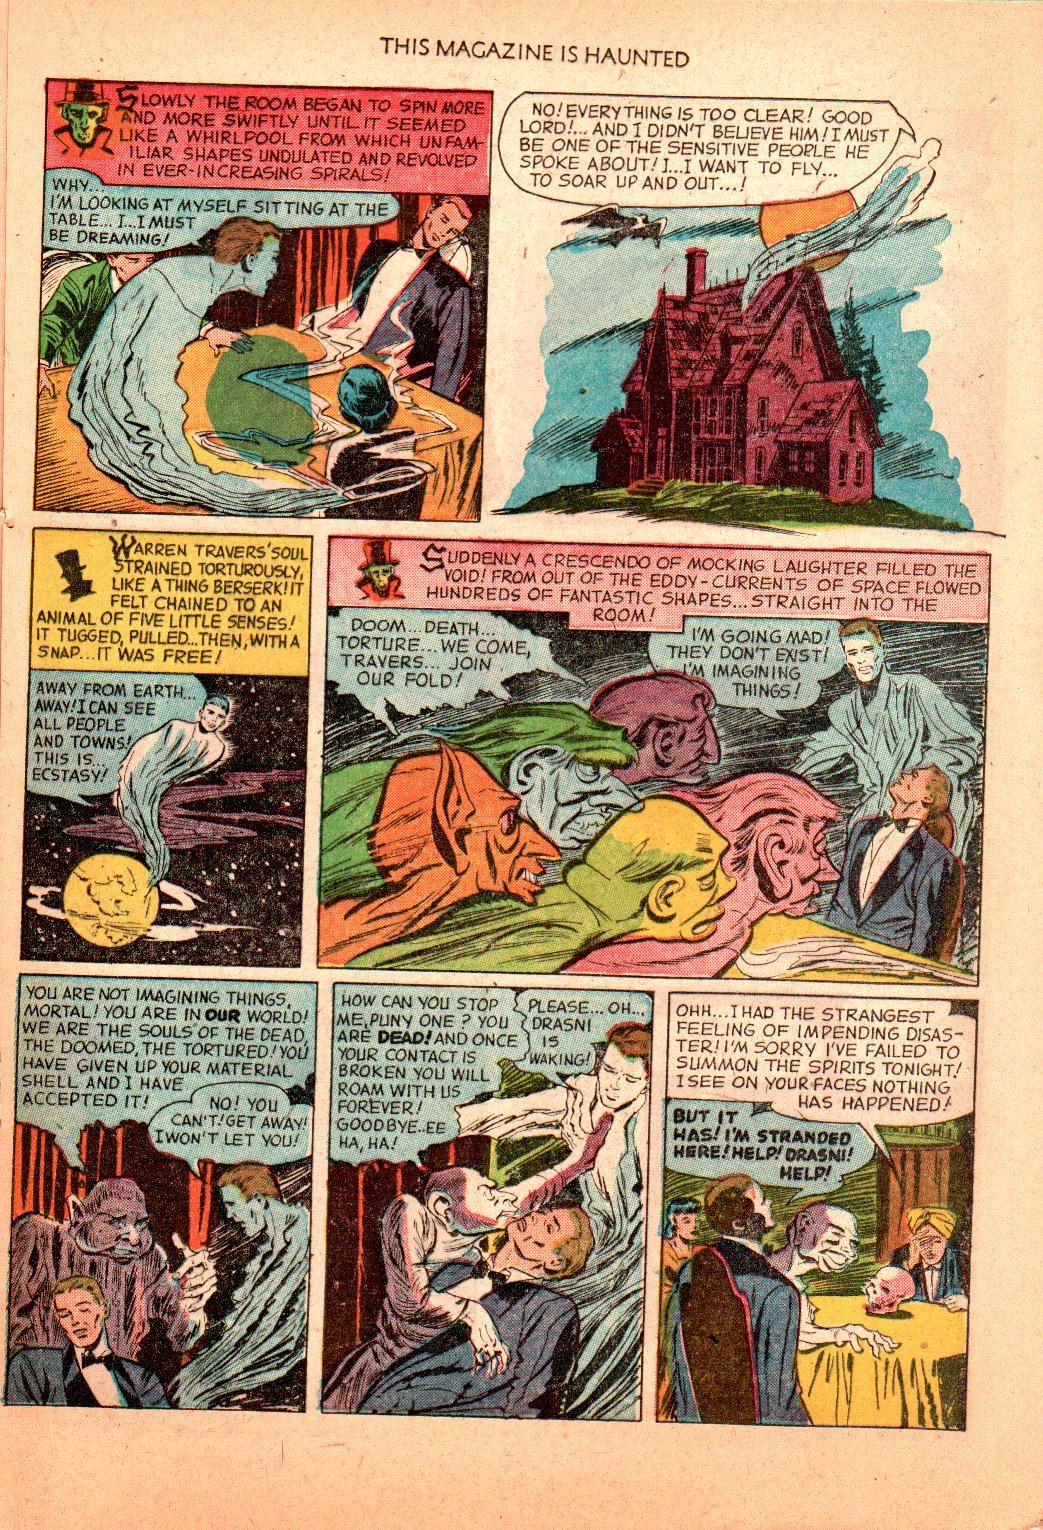 Read online This Magazine Is Haunted comic -  Issue #4 - 17